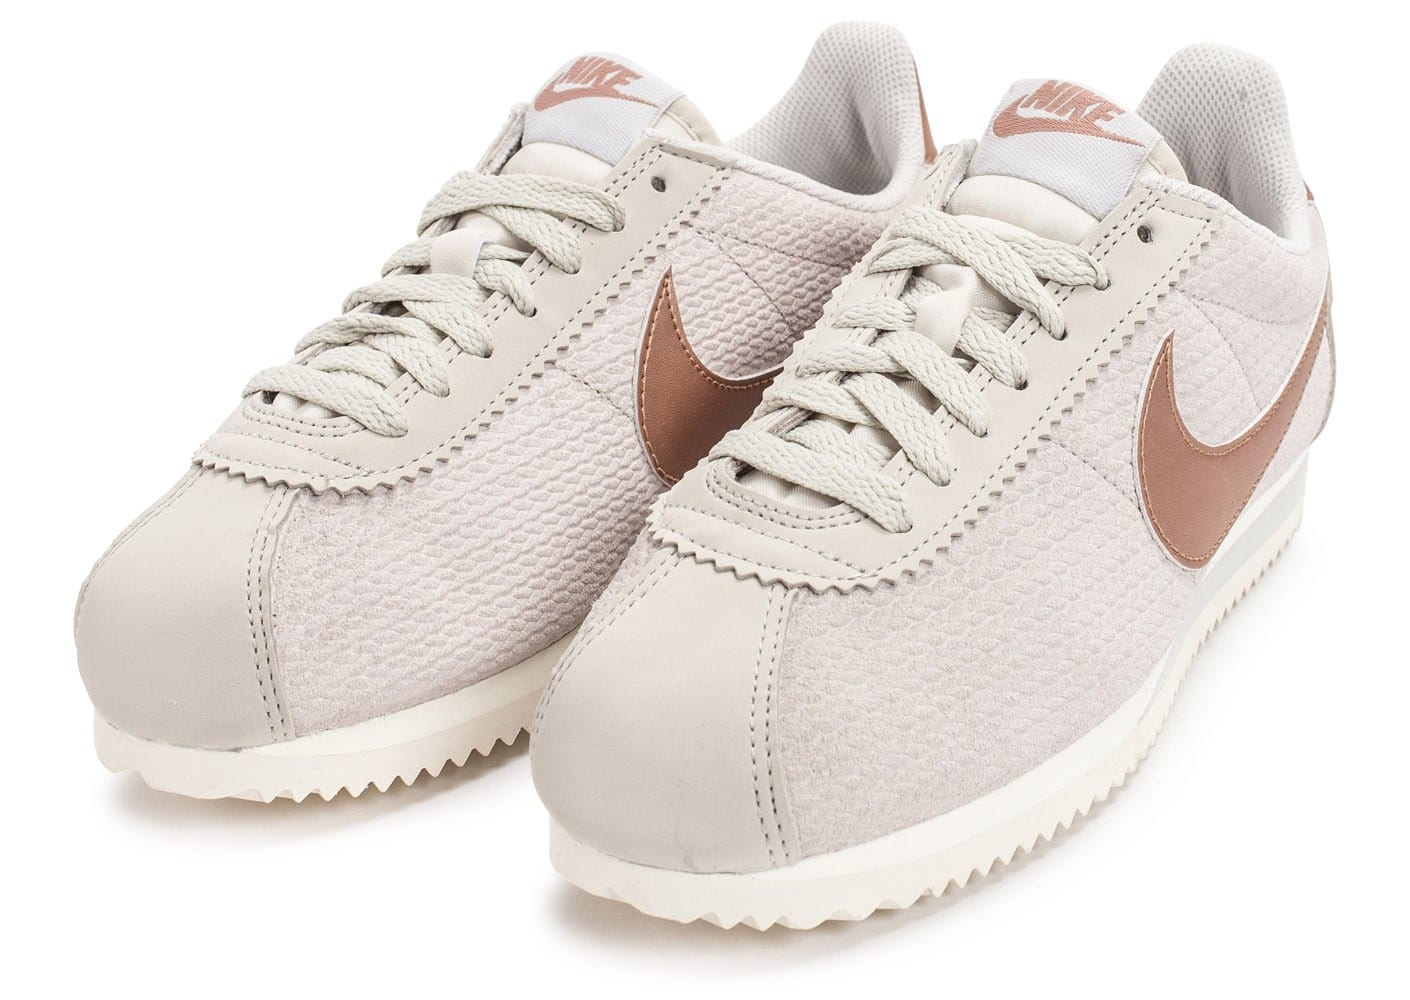 nike cortez femme beige. Black Bedroom Furniture Sets. Home Design Ideas